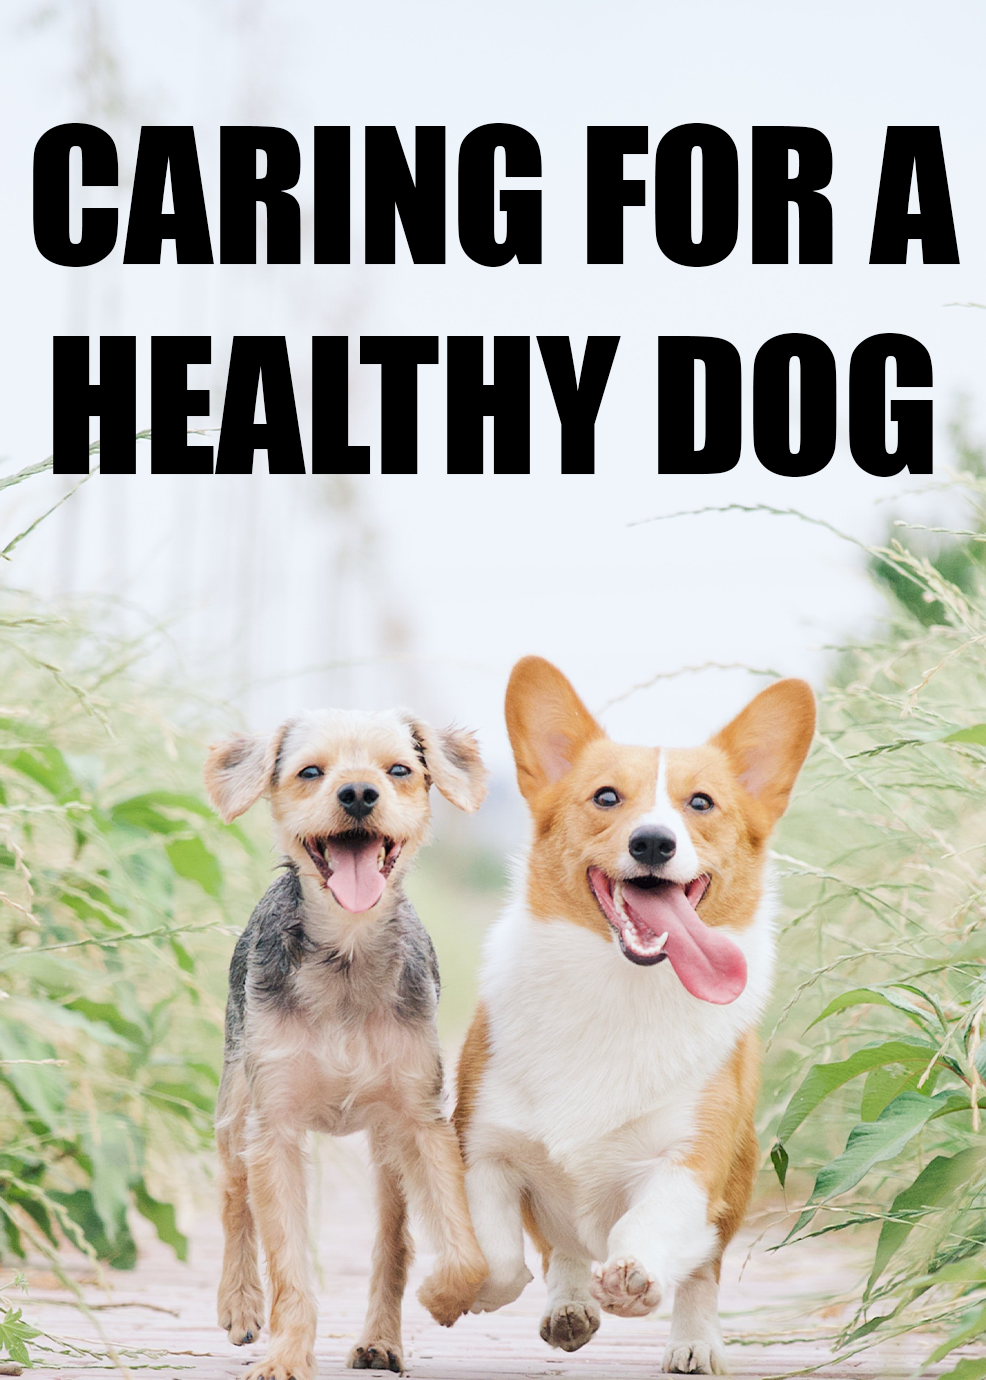 Caring For A Healthy Dog